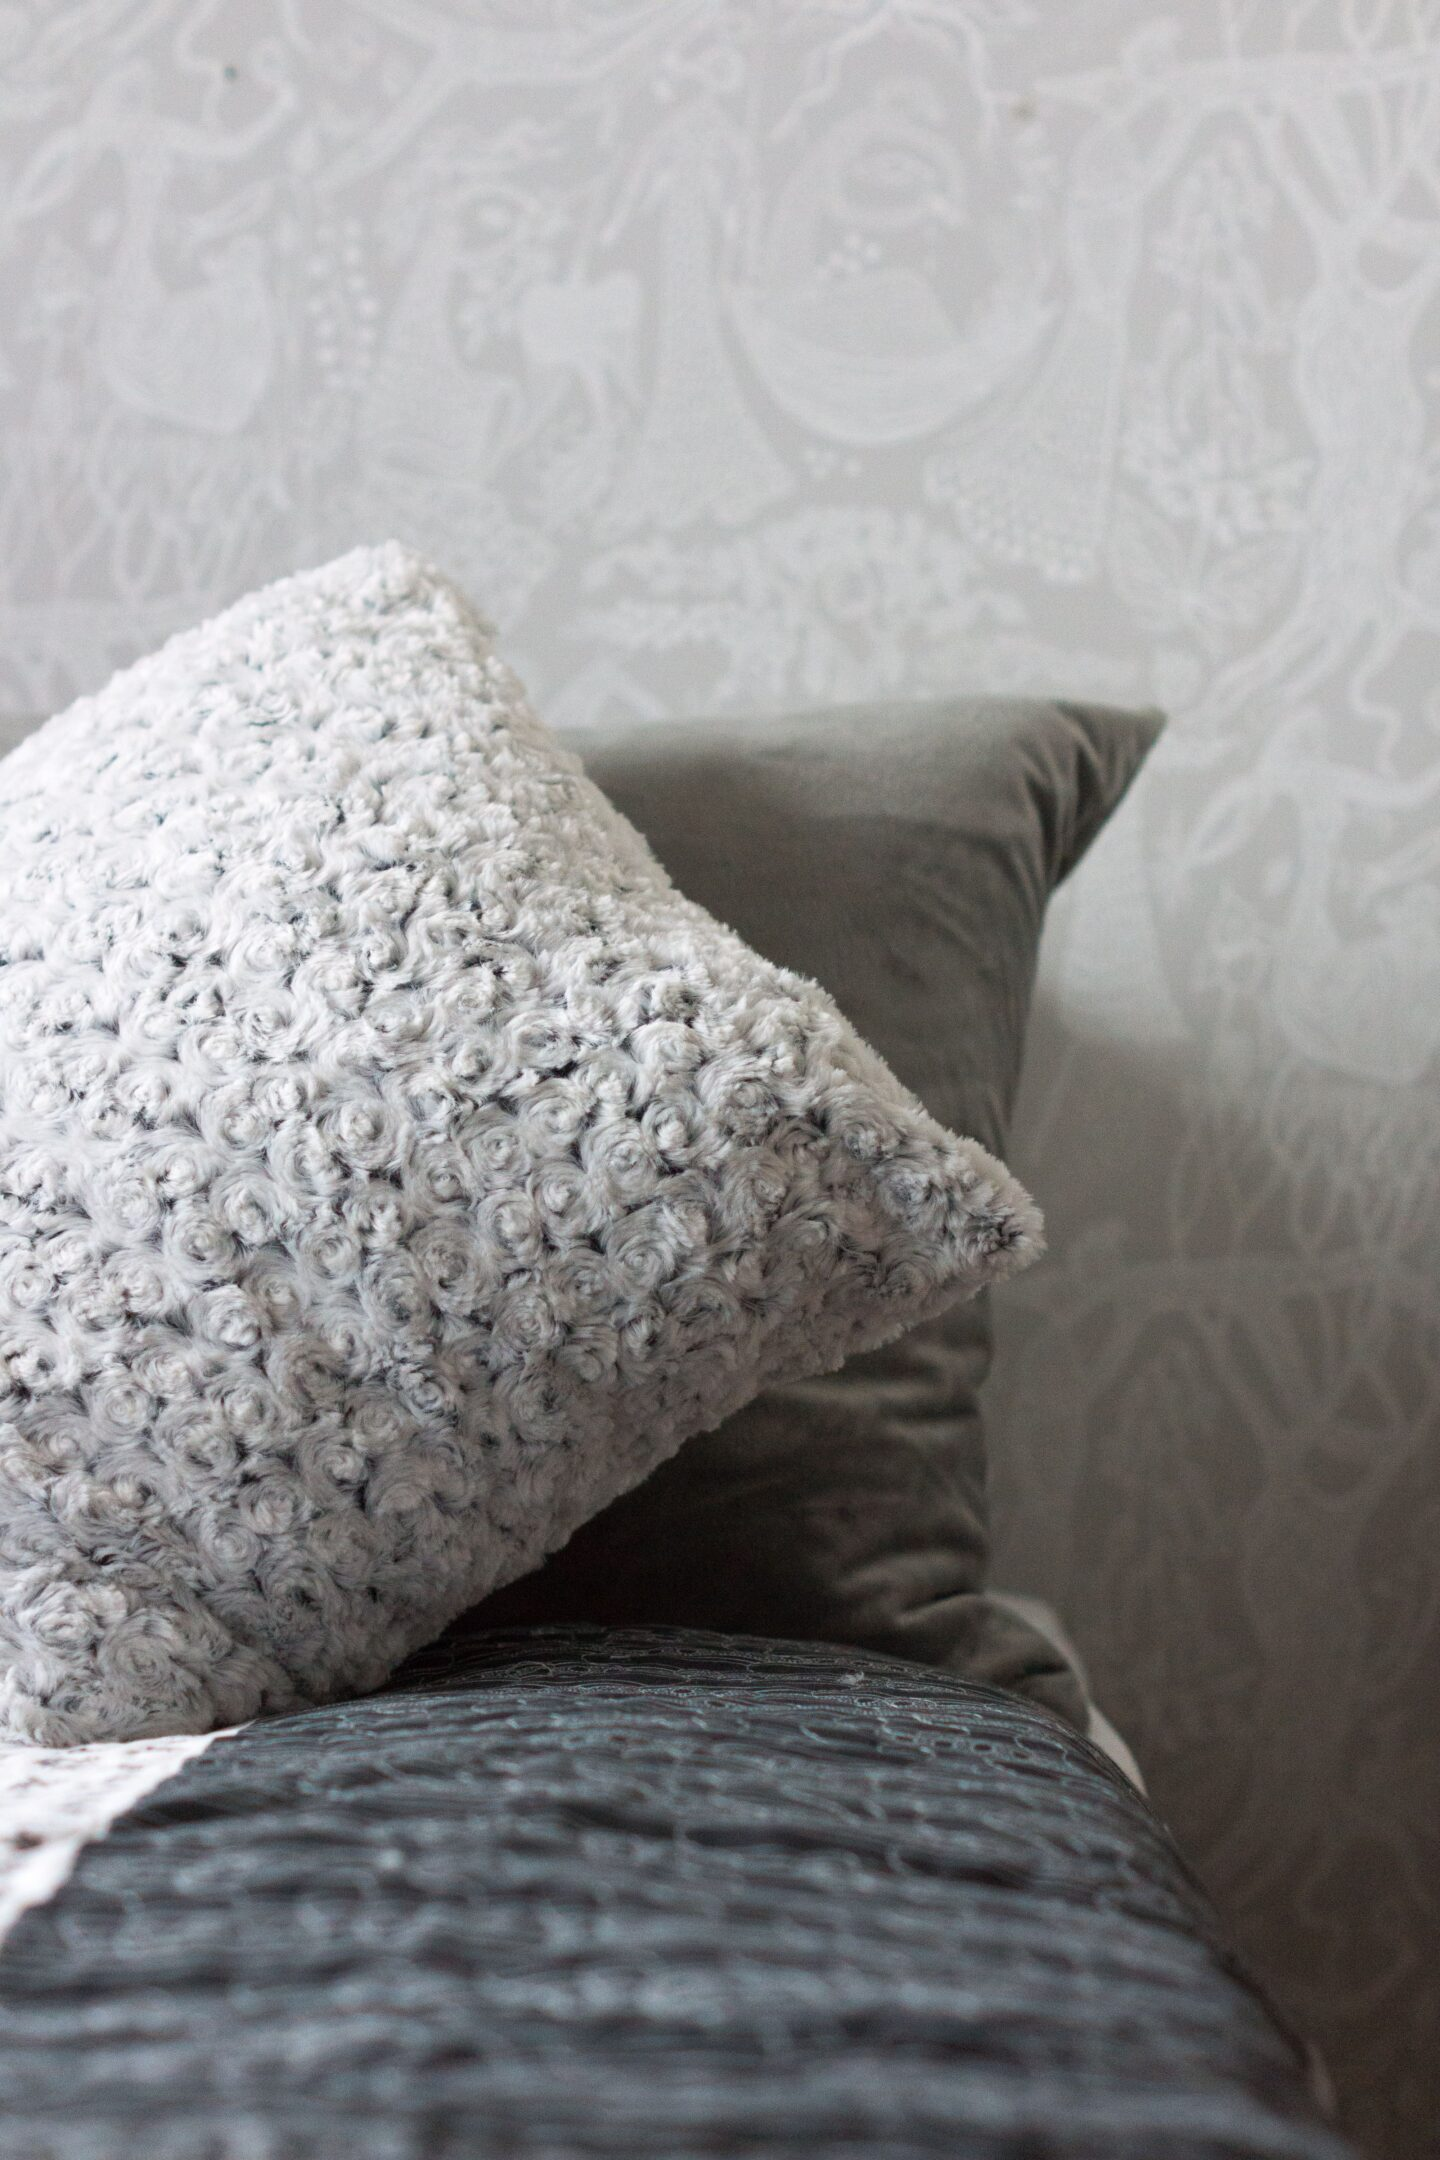 Wallpaper accent on a bedroom as a budget friendly way to decorate a room.